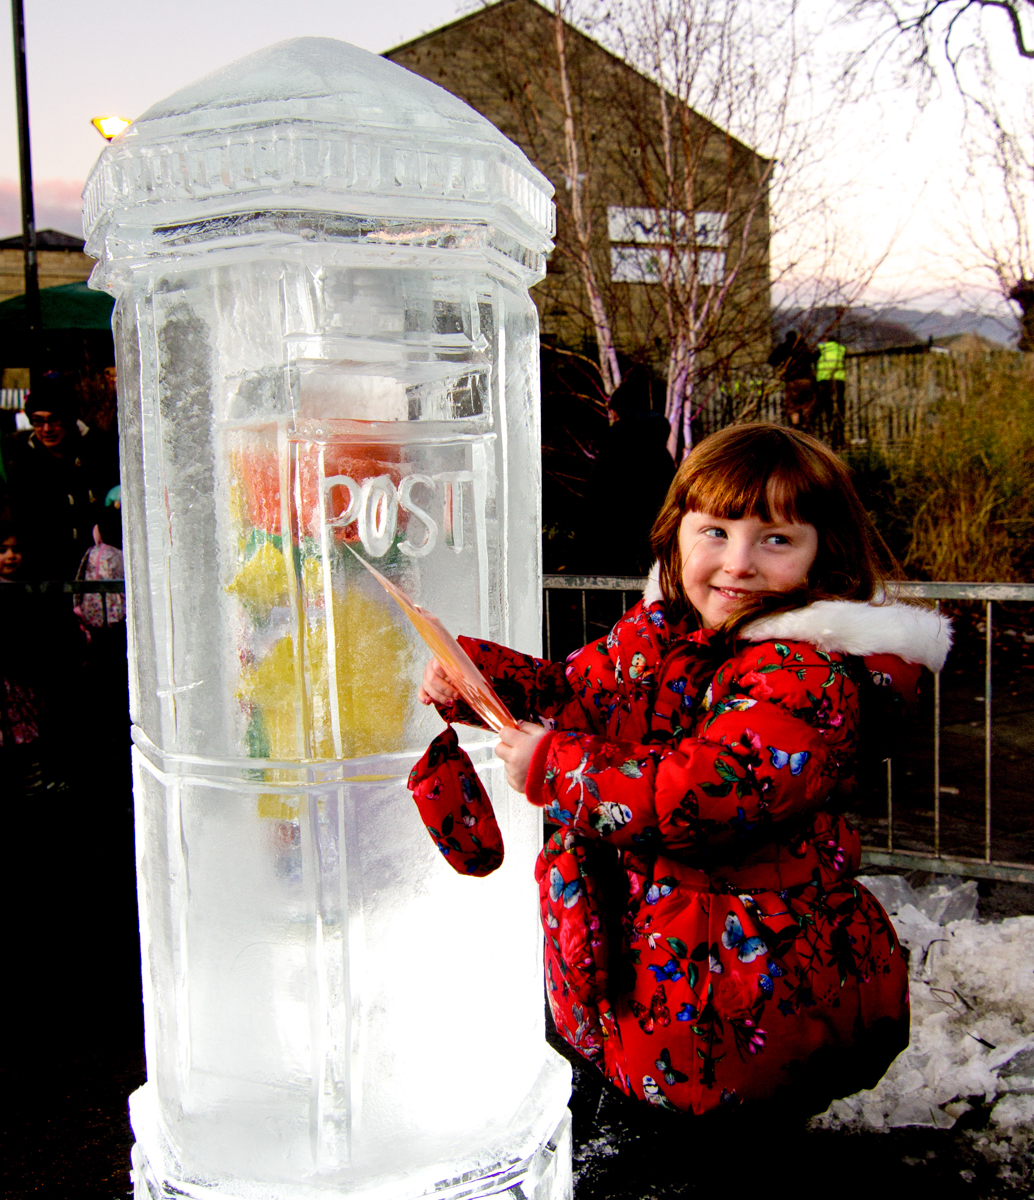 children posting their letters to Santa in the ice post box